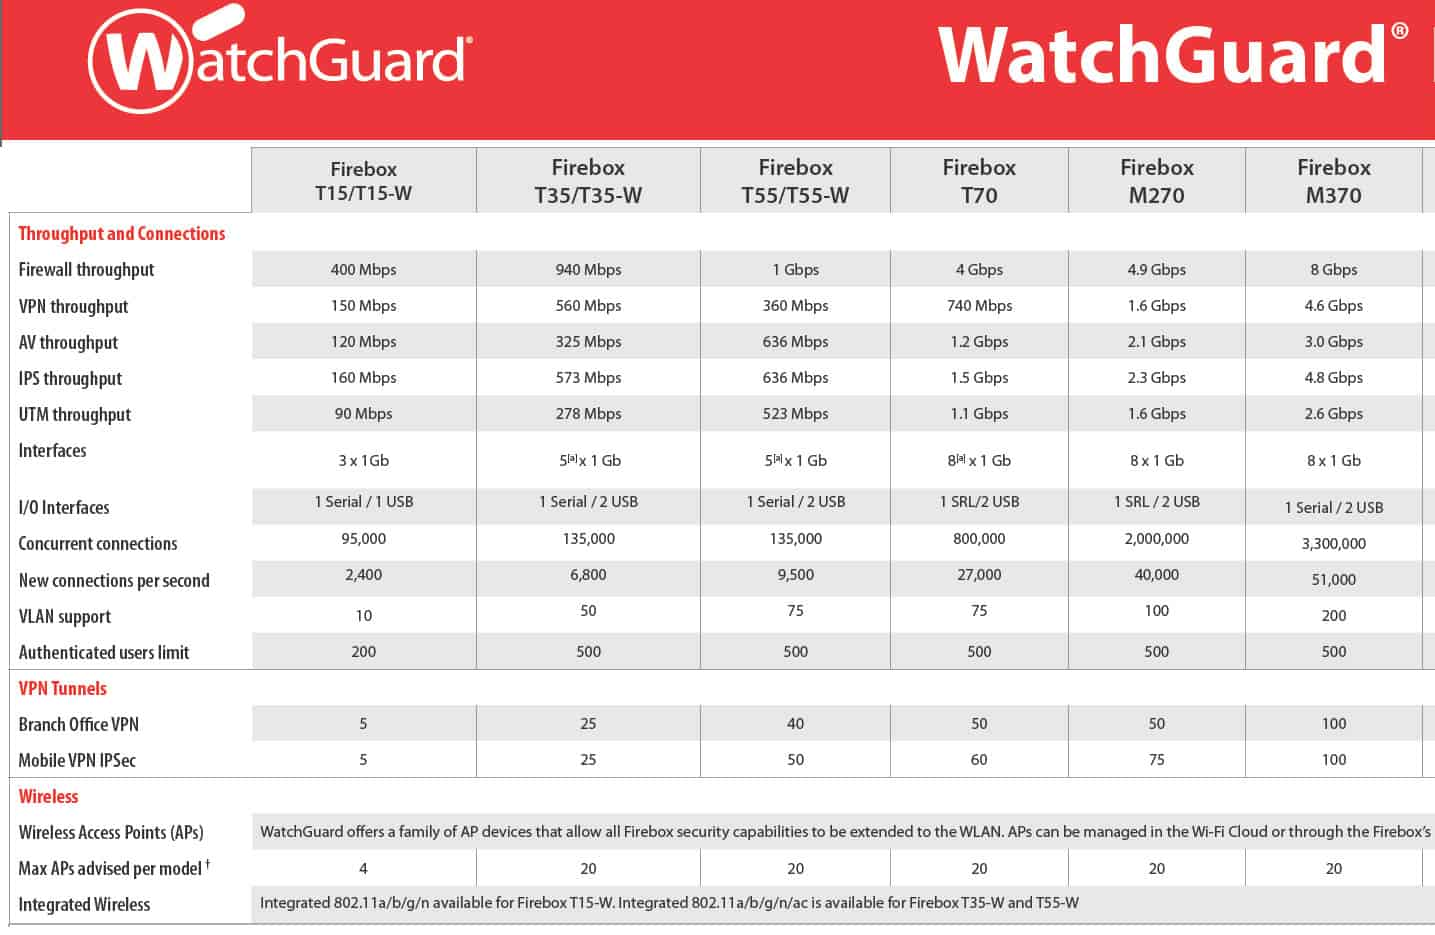 Watchguard Product Matrix Datasheets